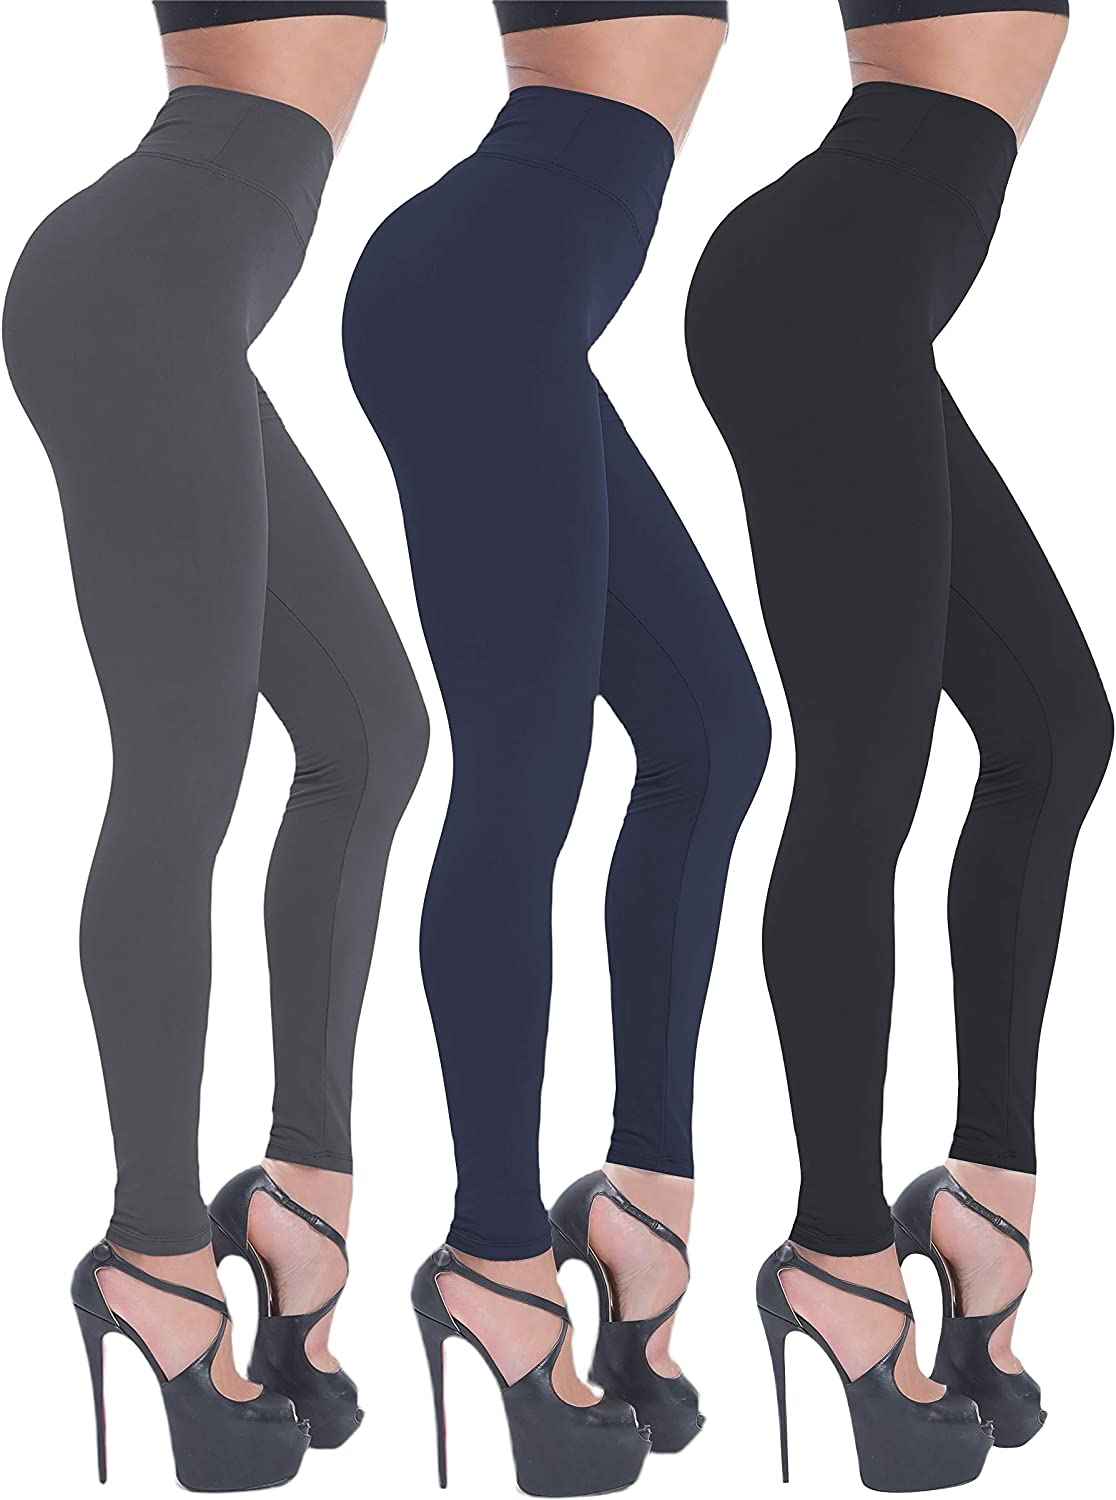 BEELU FASHION BOUTIQUE Leggings for Women High Waisted Yoga Workout Pants Tummy Control Slim(One Size, 3 Pack (Black+Navy+Charcoal))